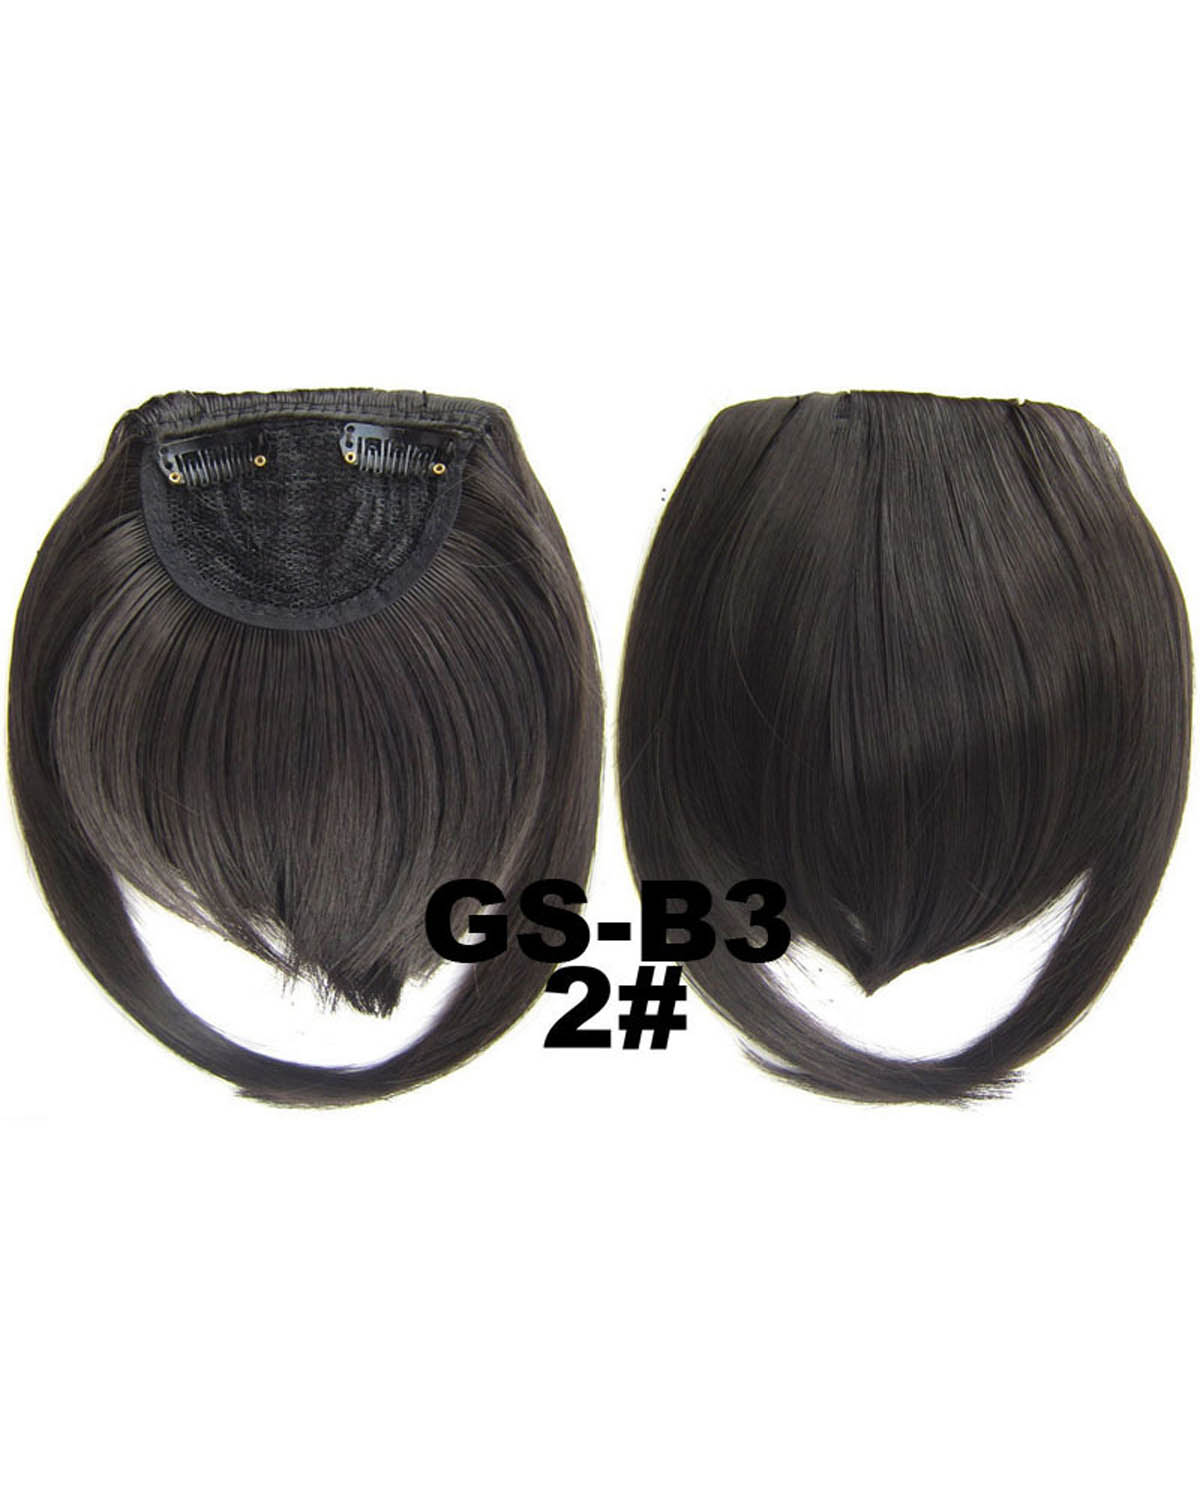 Girls Salable Straight Short Bangs Clip in Synthetic Hair Extension Fringe Bangs Hairpiece 2#